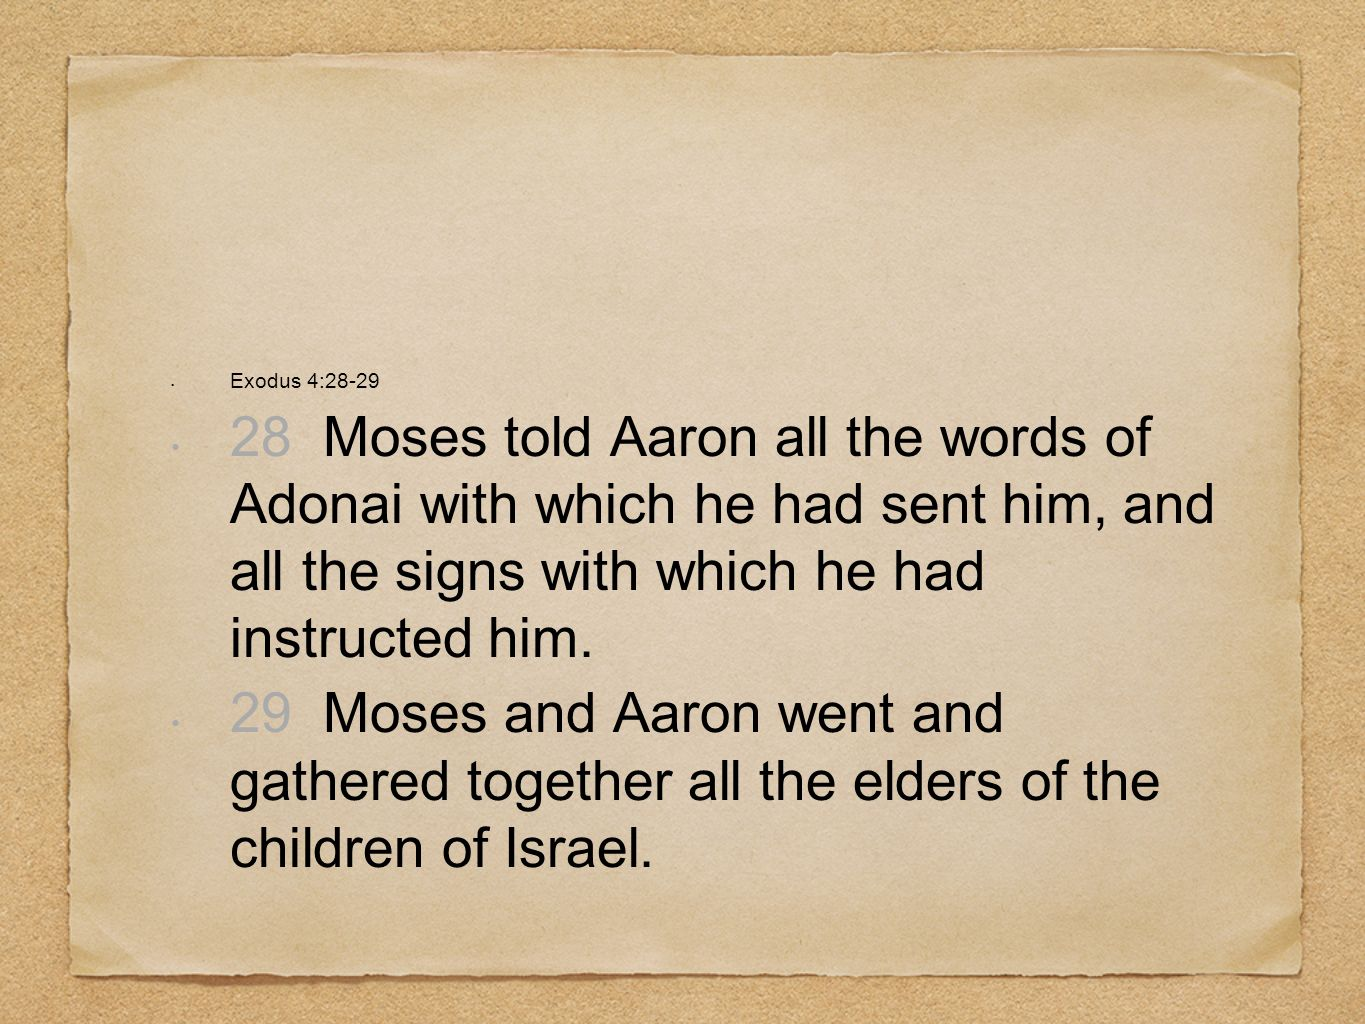 Exodus 4:28-2928 Moses told Aaron all the words of Adonai with which he had sent him, and all the signs with which he had instructed him.